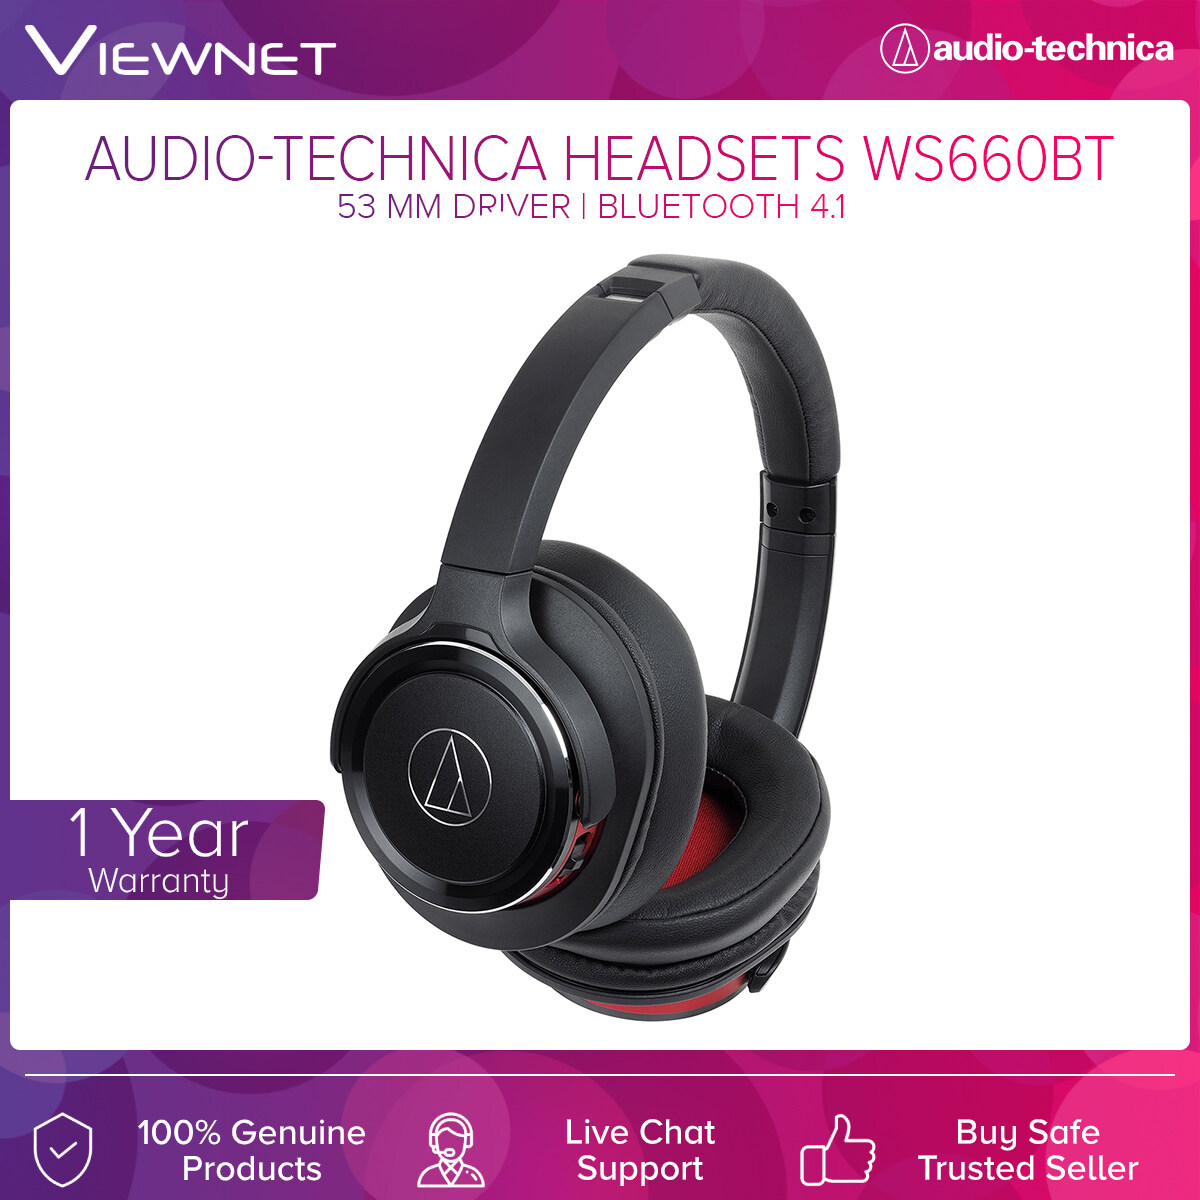 Audio-Technica Wireless Headsets ATH-WS660BT with 53mm Driver, Bluetooth 4.1, Noise Cancelling, Solid Bass, 8 - 29,000 Hz Frequency, 40 Hours Battery Life